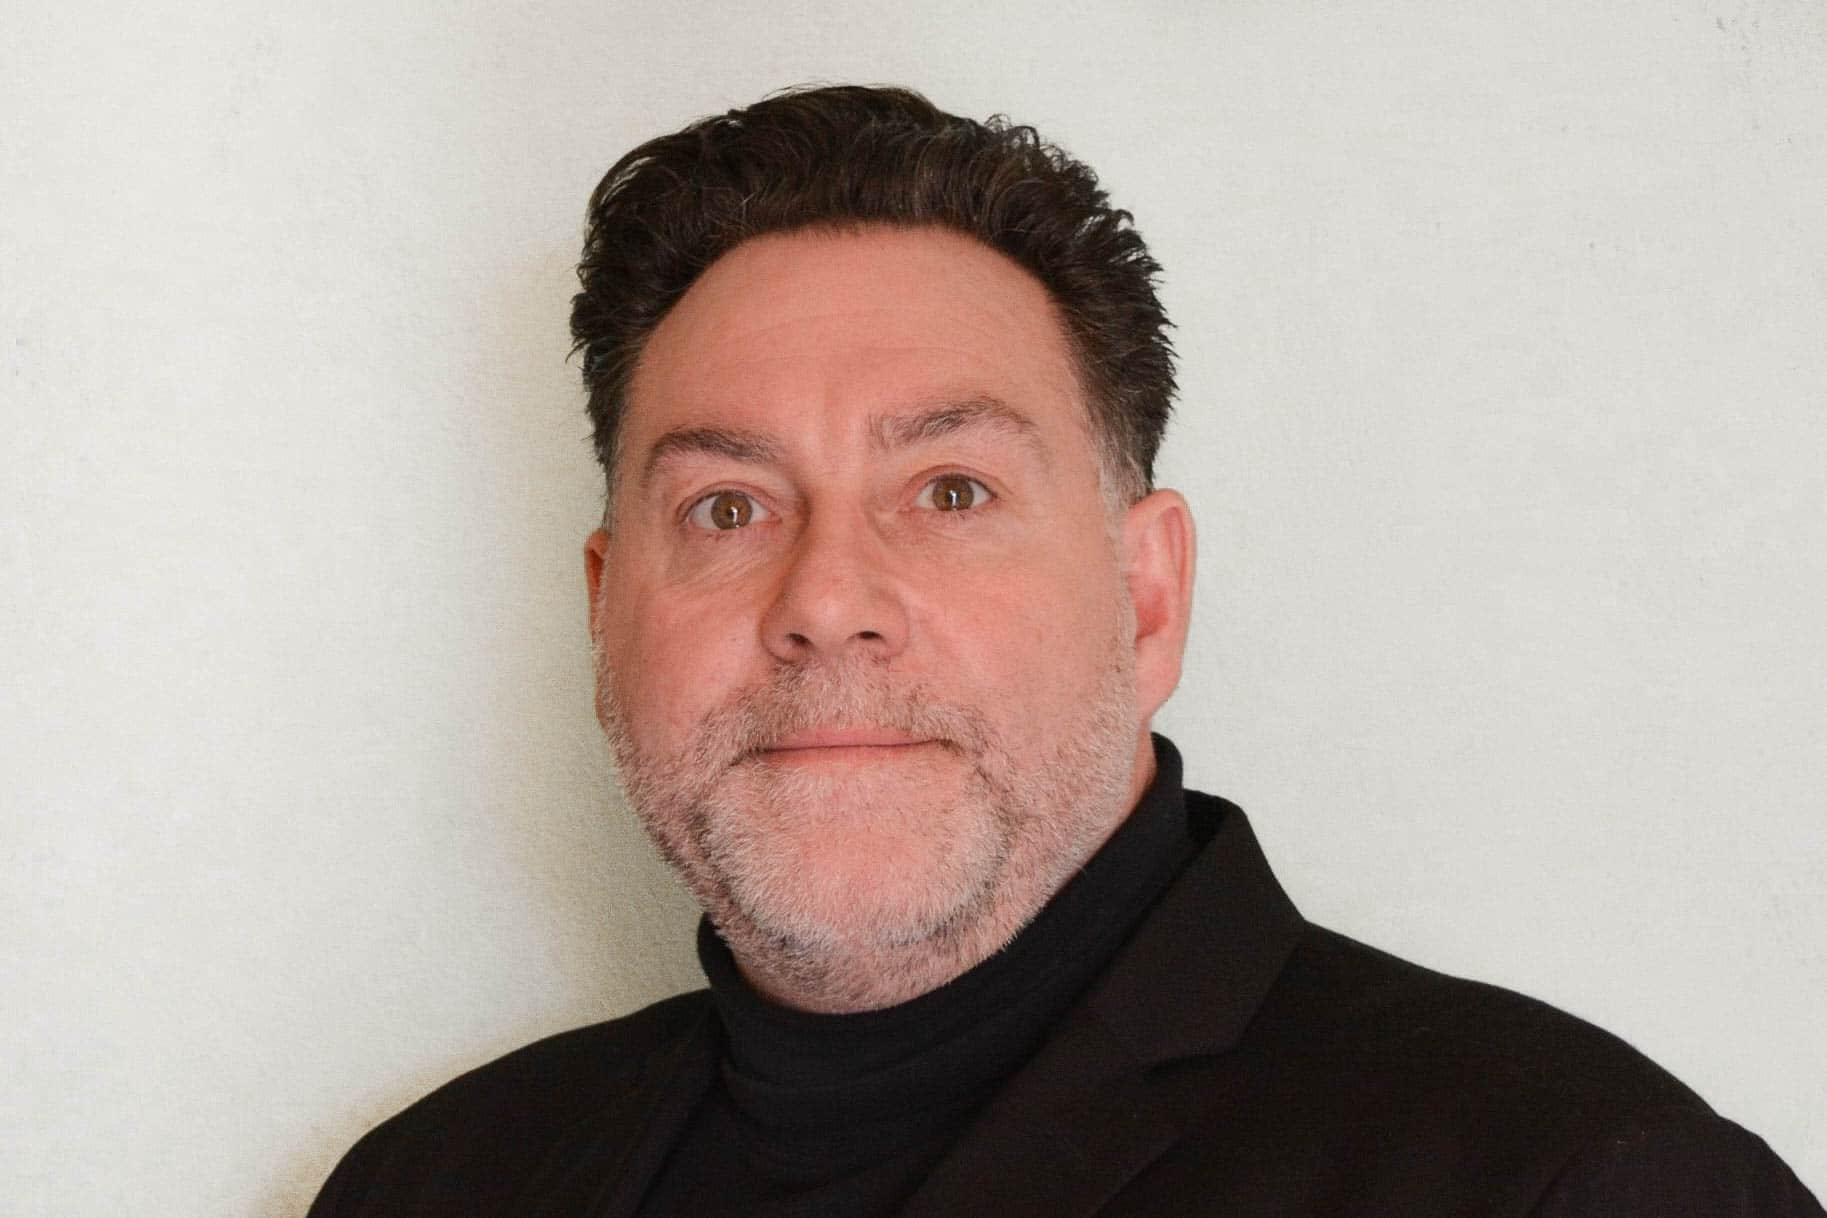 Interview with Mike Freche - Global Brand Manager at MBCC Group